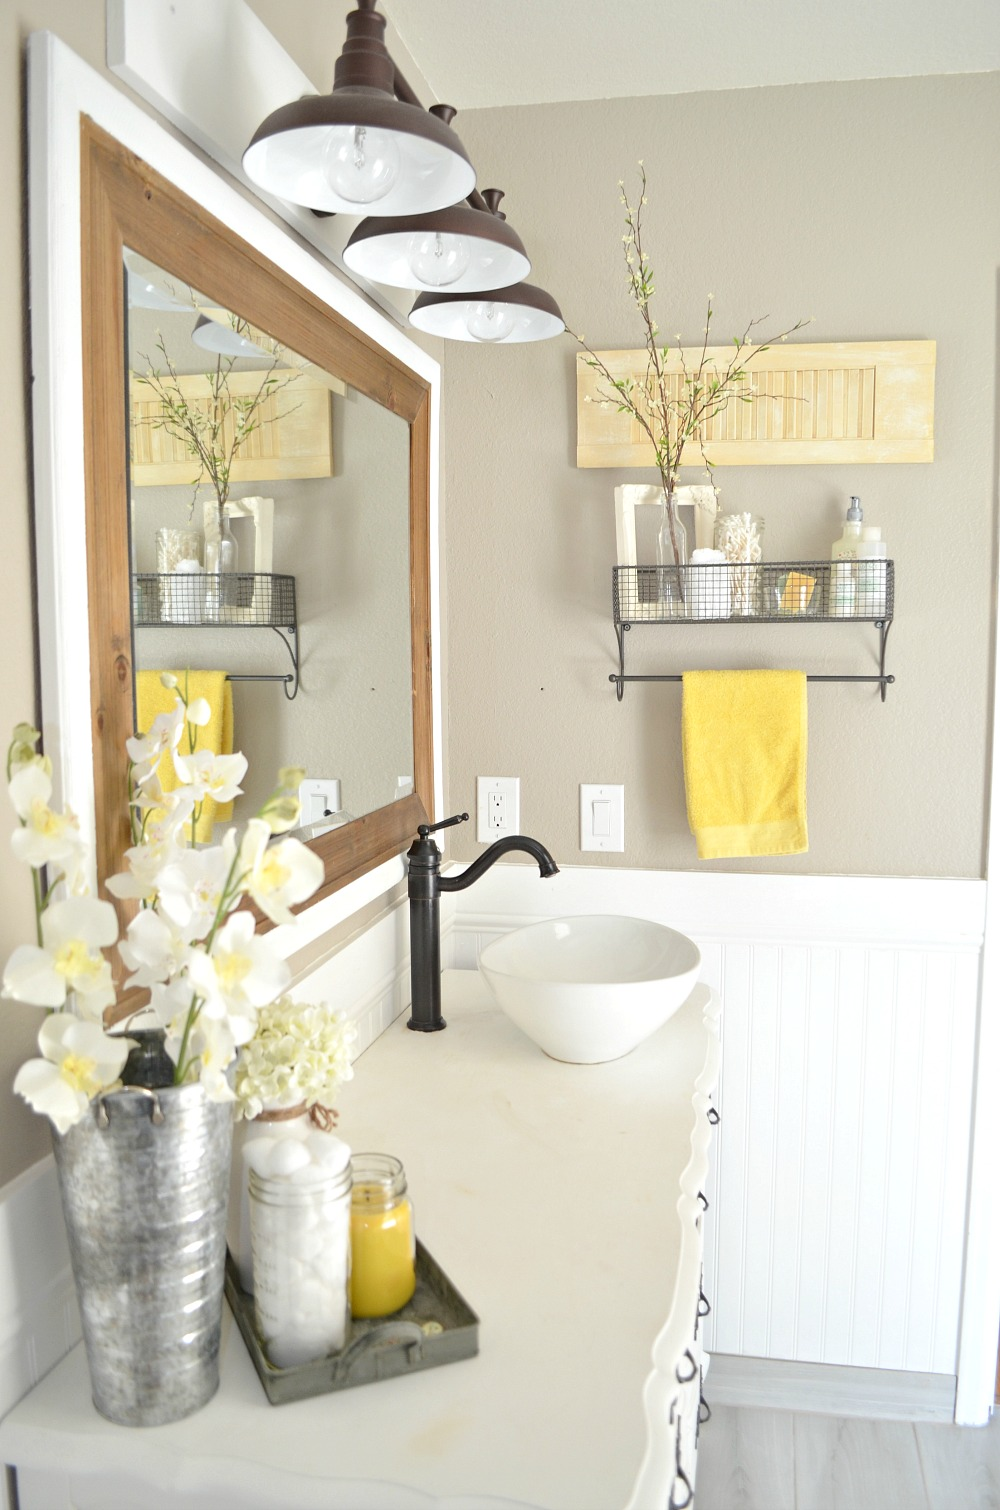 How to easily mix vintage and modern decor little for Toilet decor